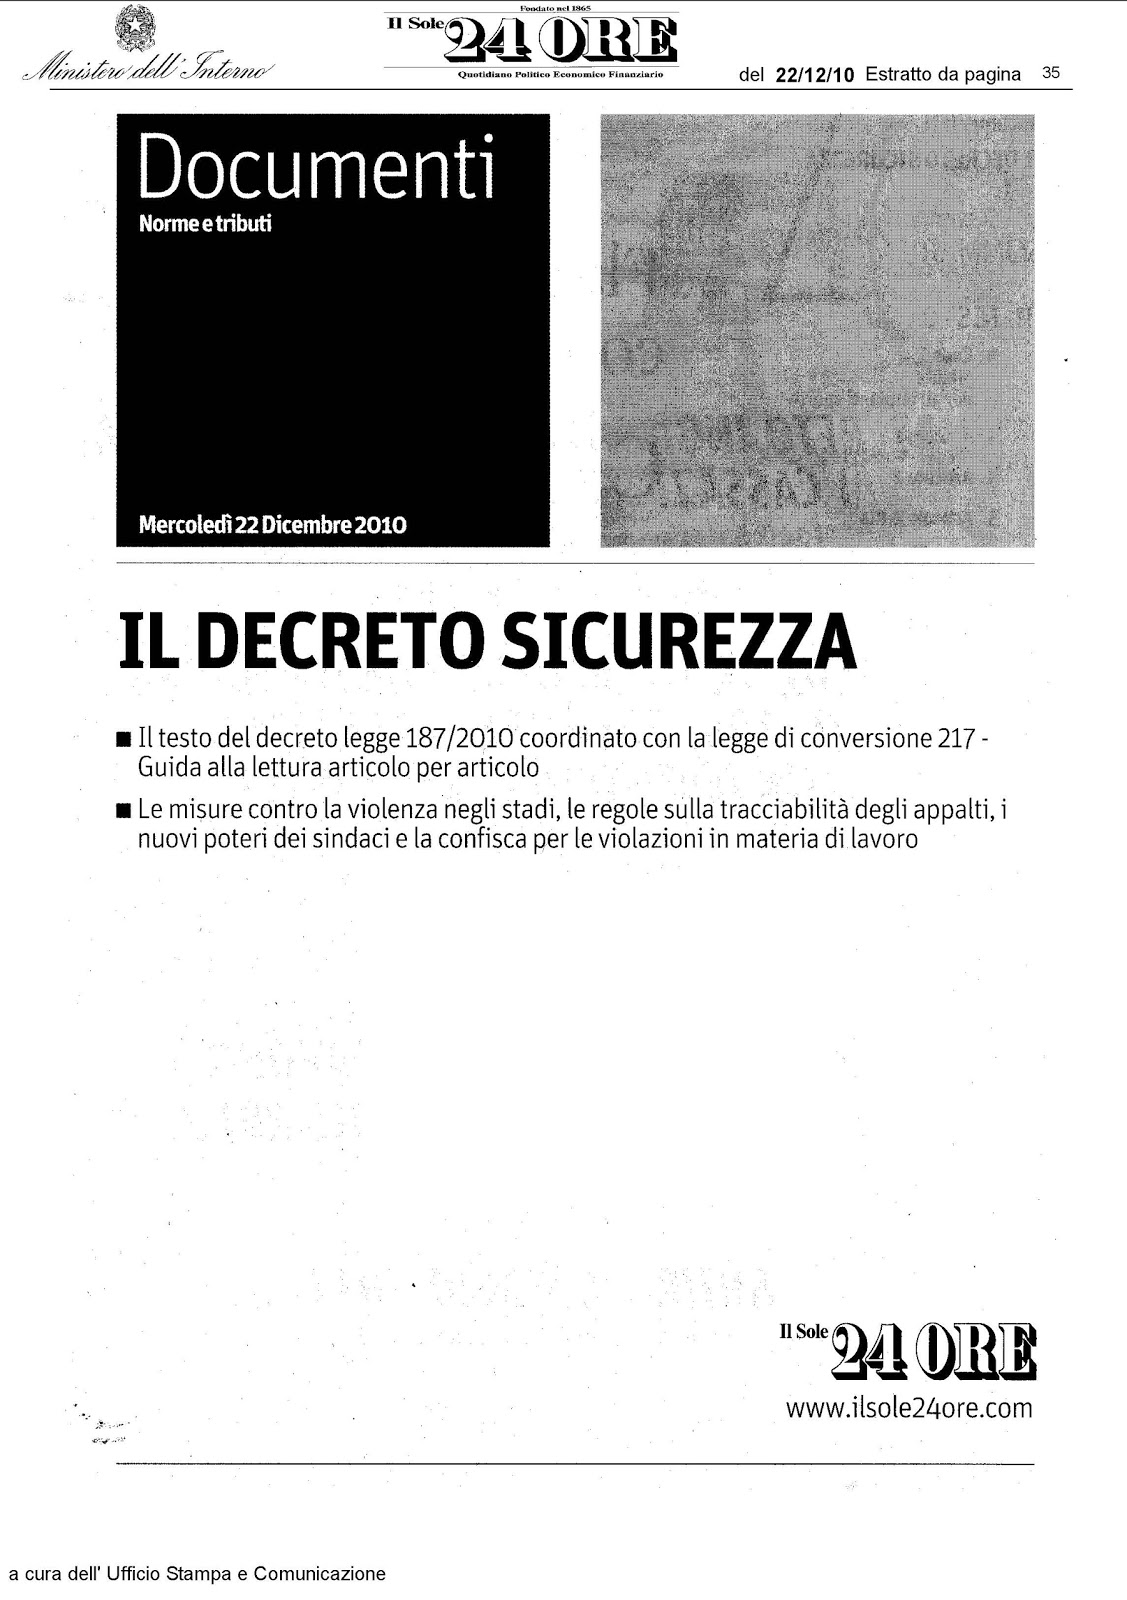 decreto sicurezza - photo #7